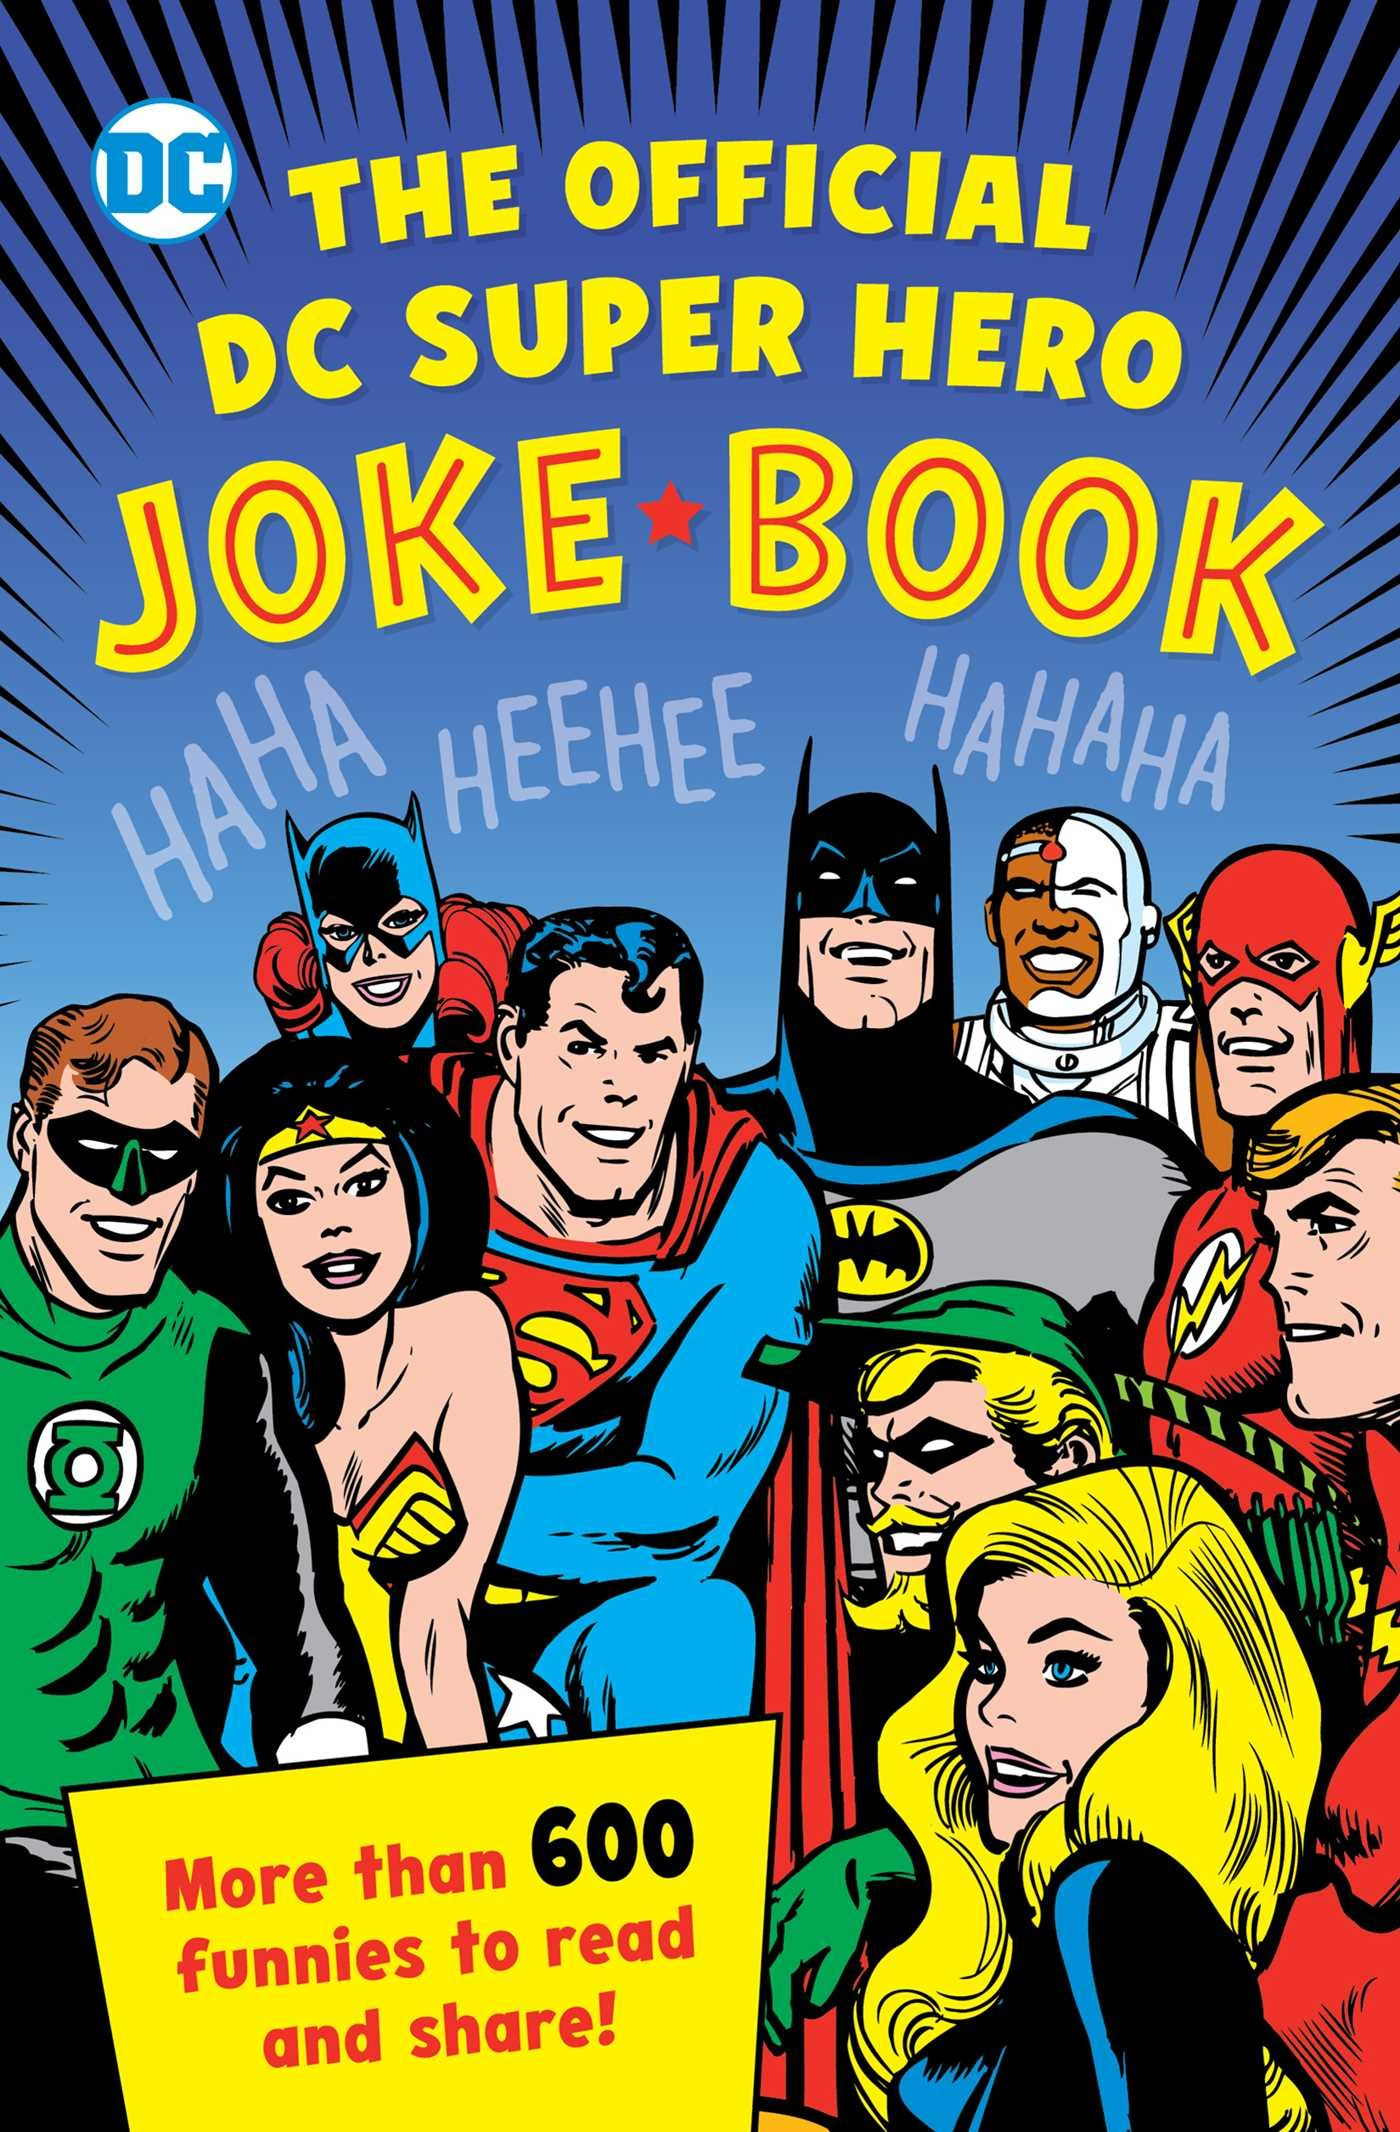 One hundred best comic book characters of all time: the most vivid and famous images of superheroes